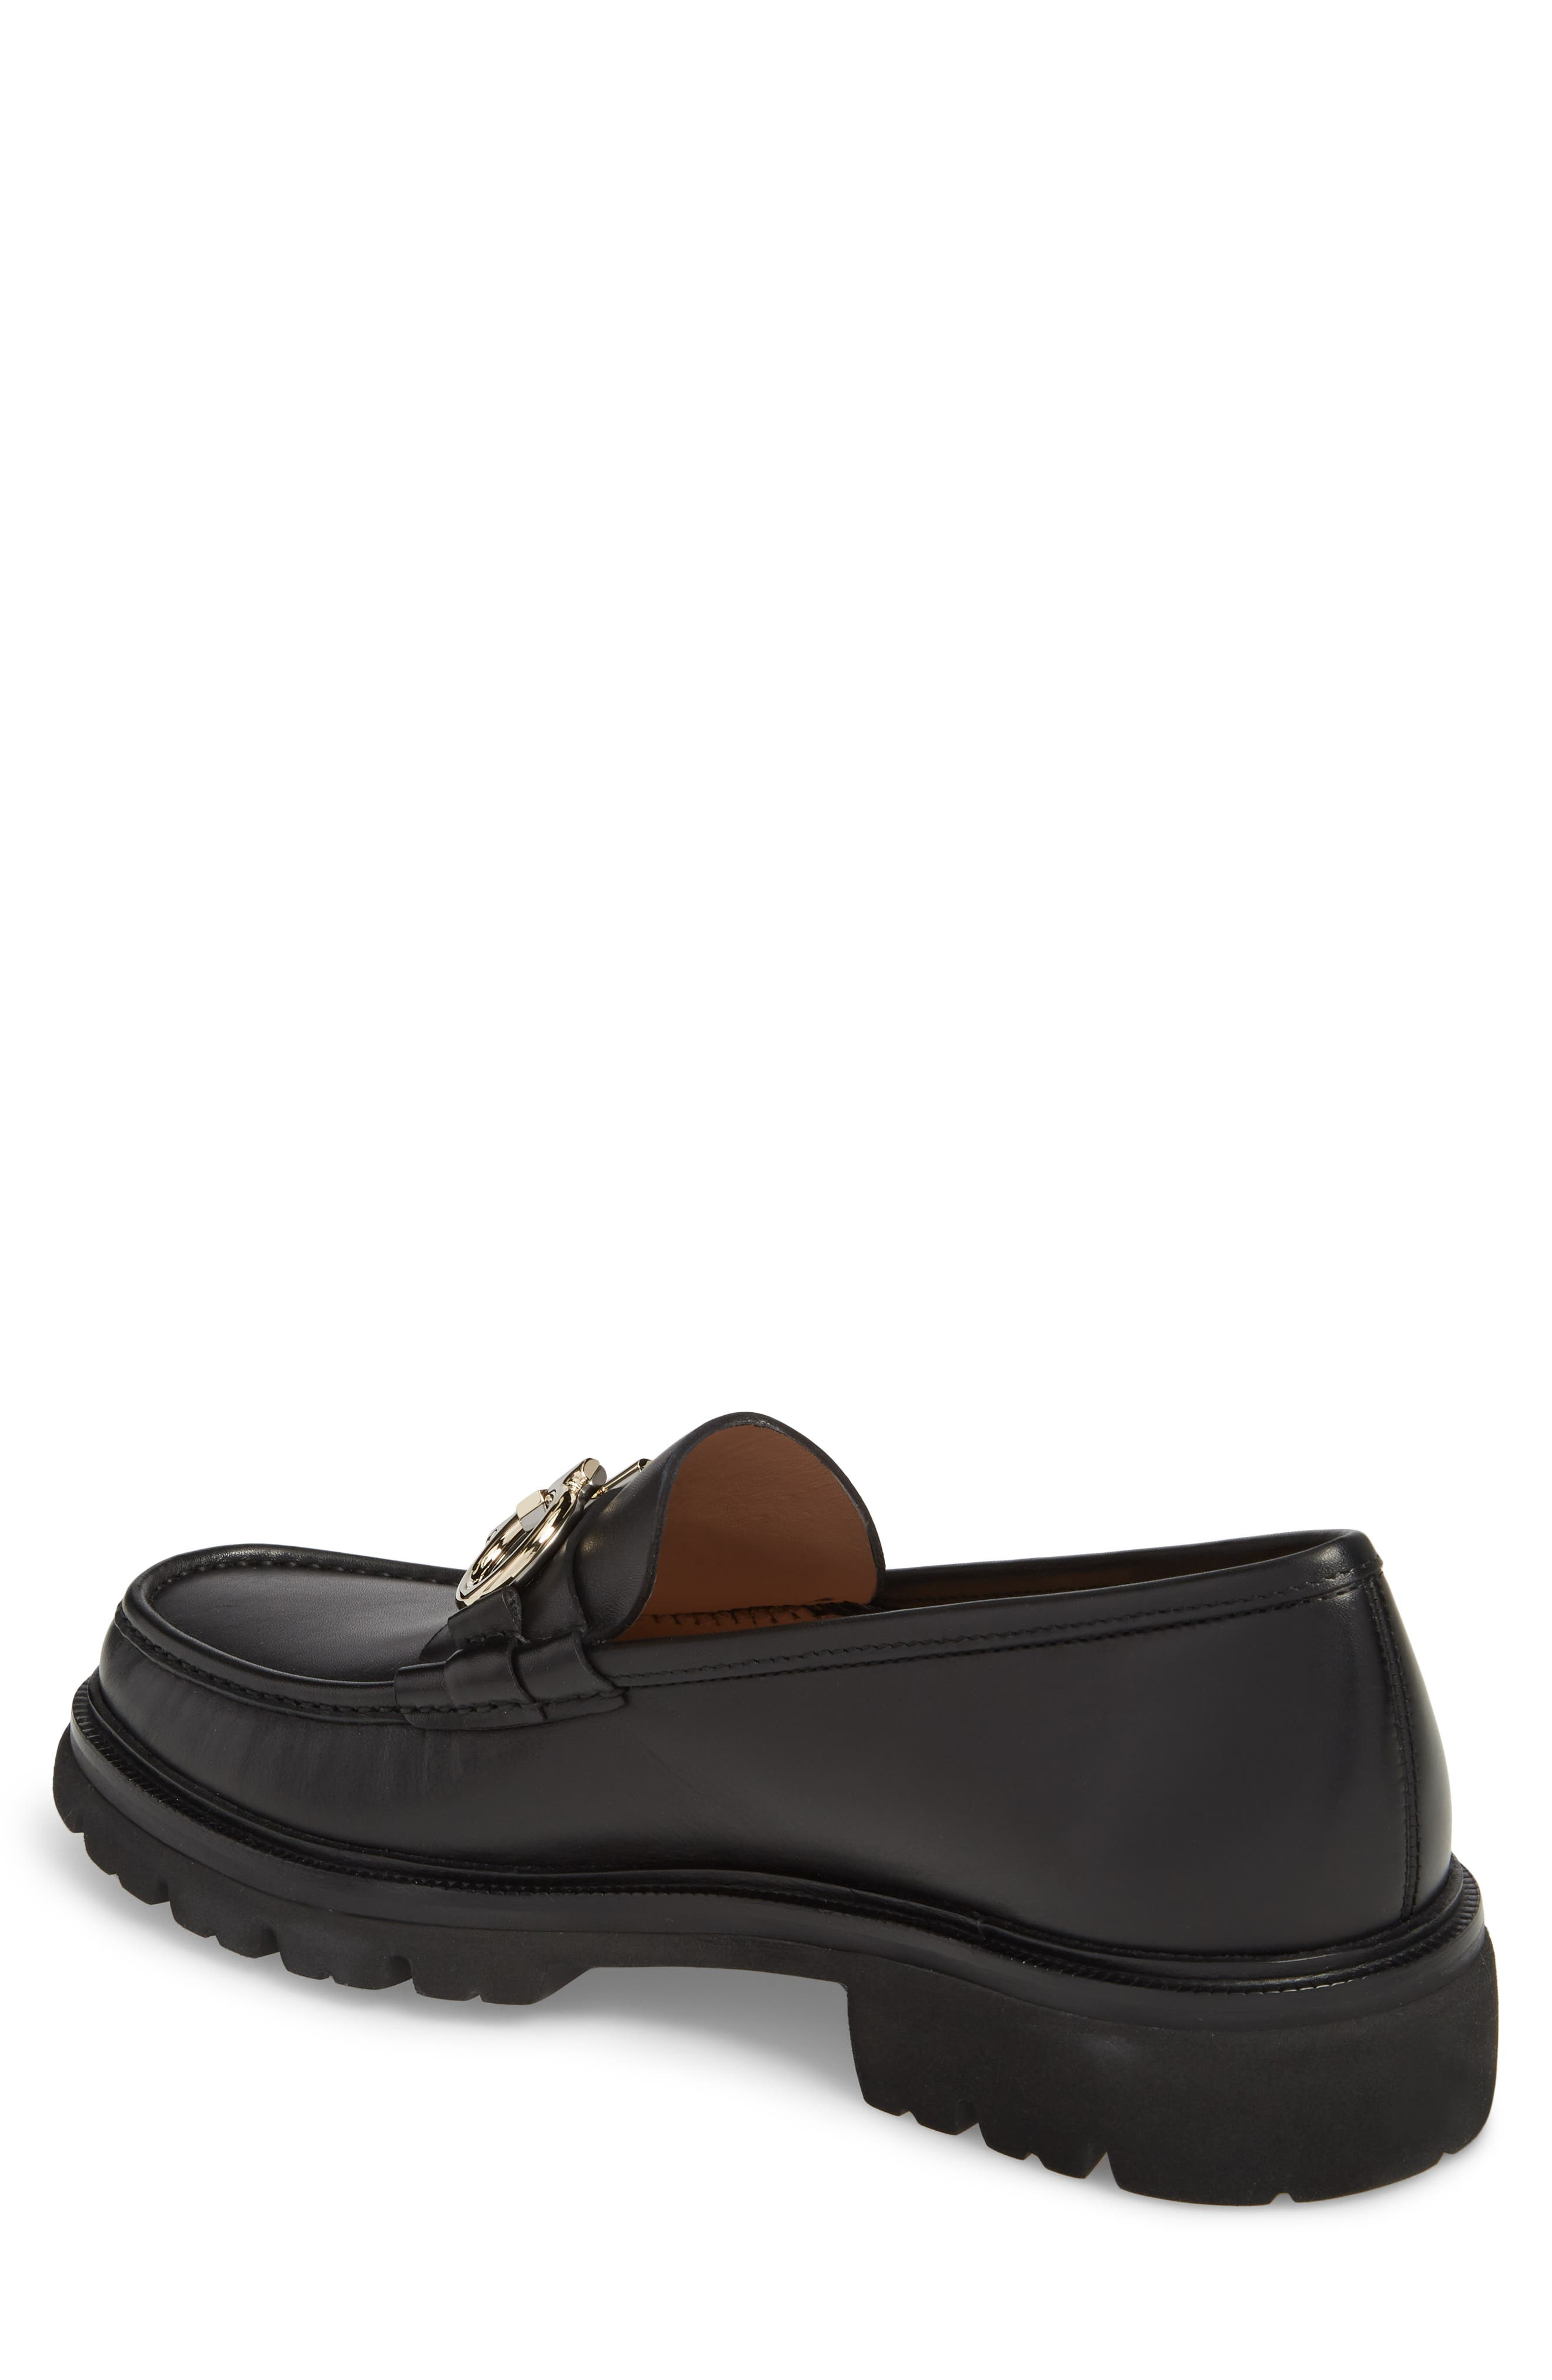 Bleecker Reversible Bit Lugged Loafer,                             Alternate thumbnail 2, color,                             NERO LEATHER